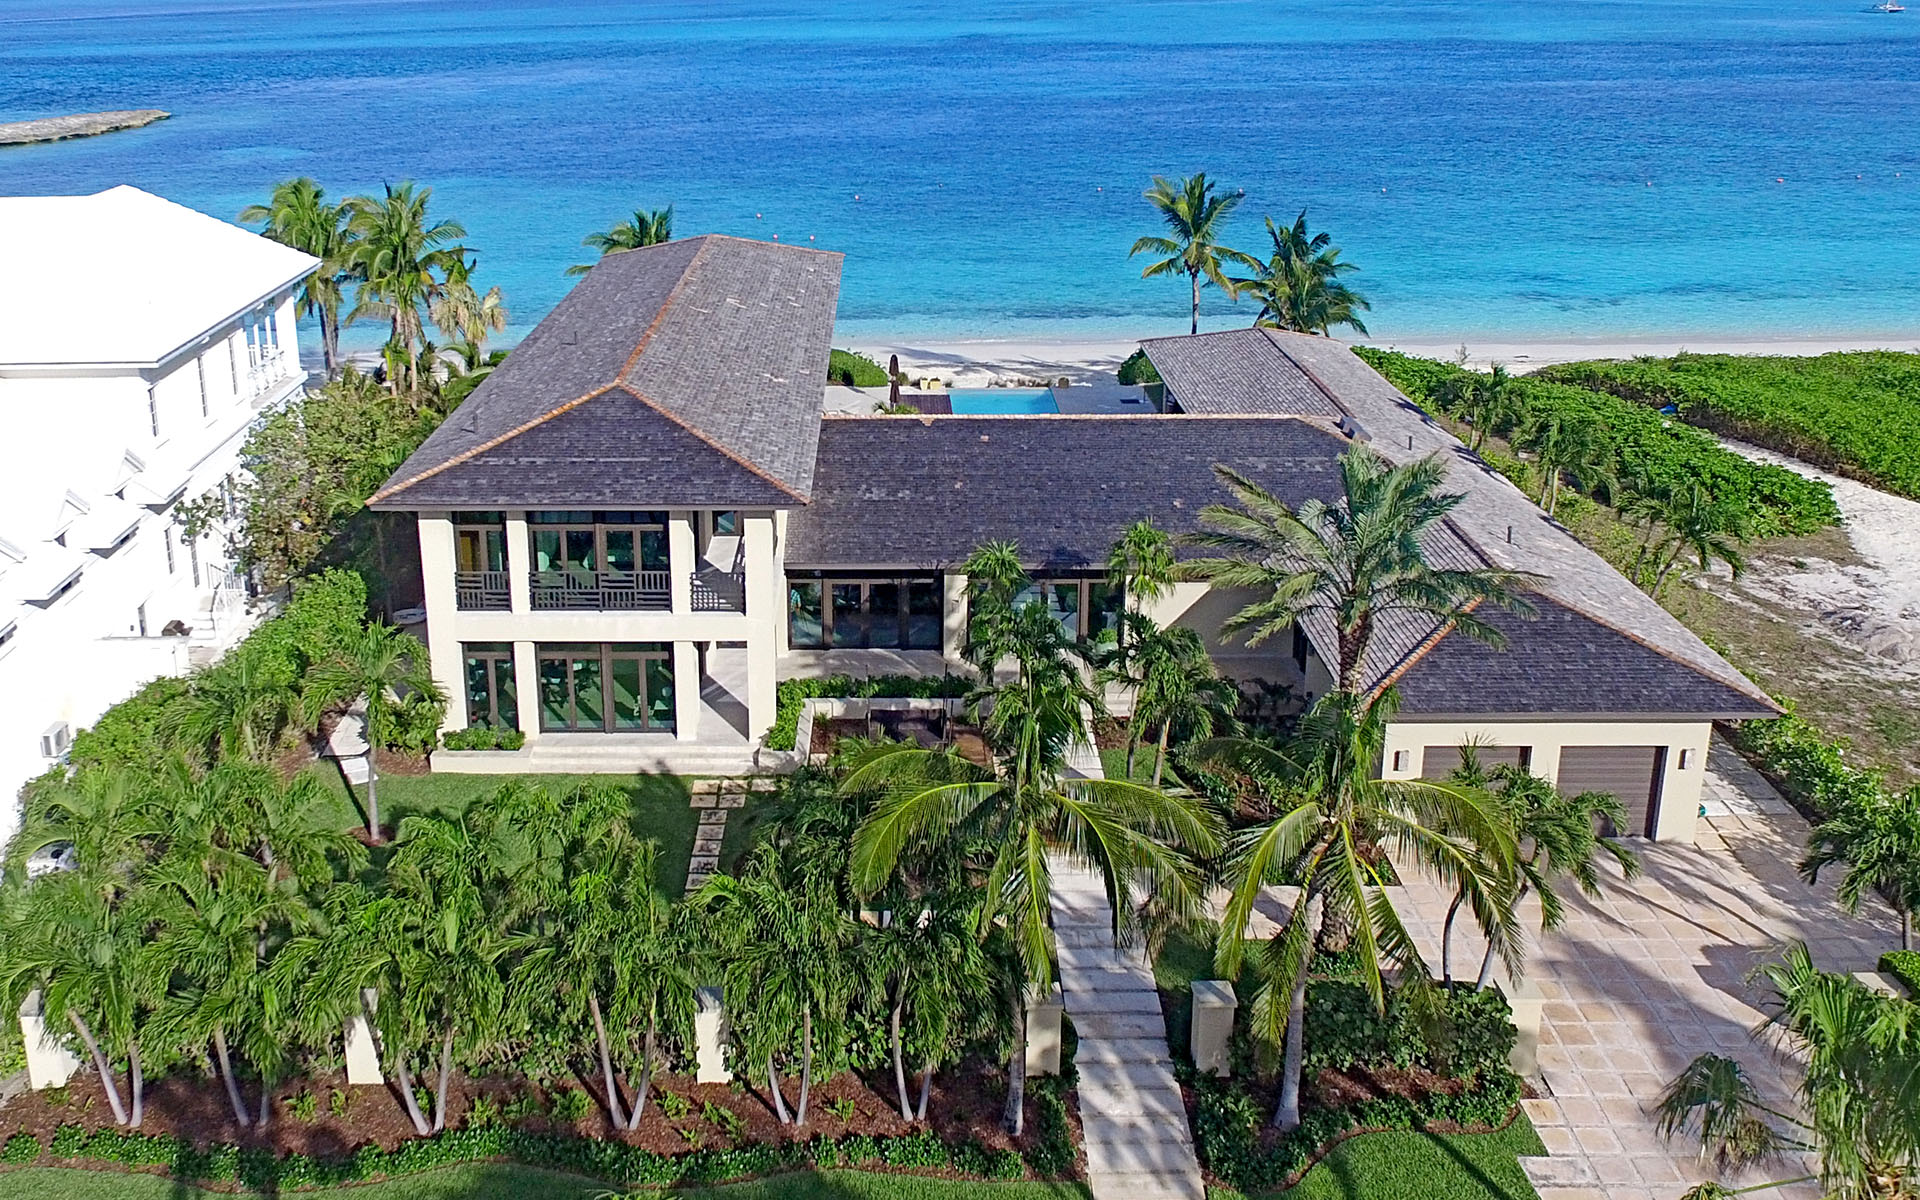 Villa per Vendita alle ore Villa Paradiso, Ocean Club Estates MLS 29060 Nassau New Providence And Vicinity